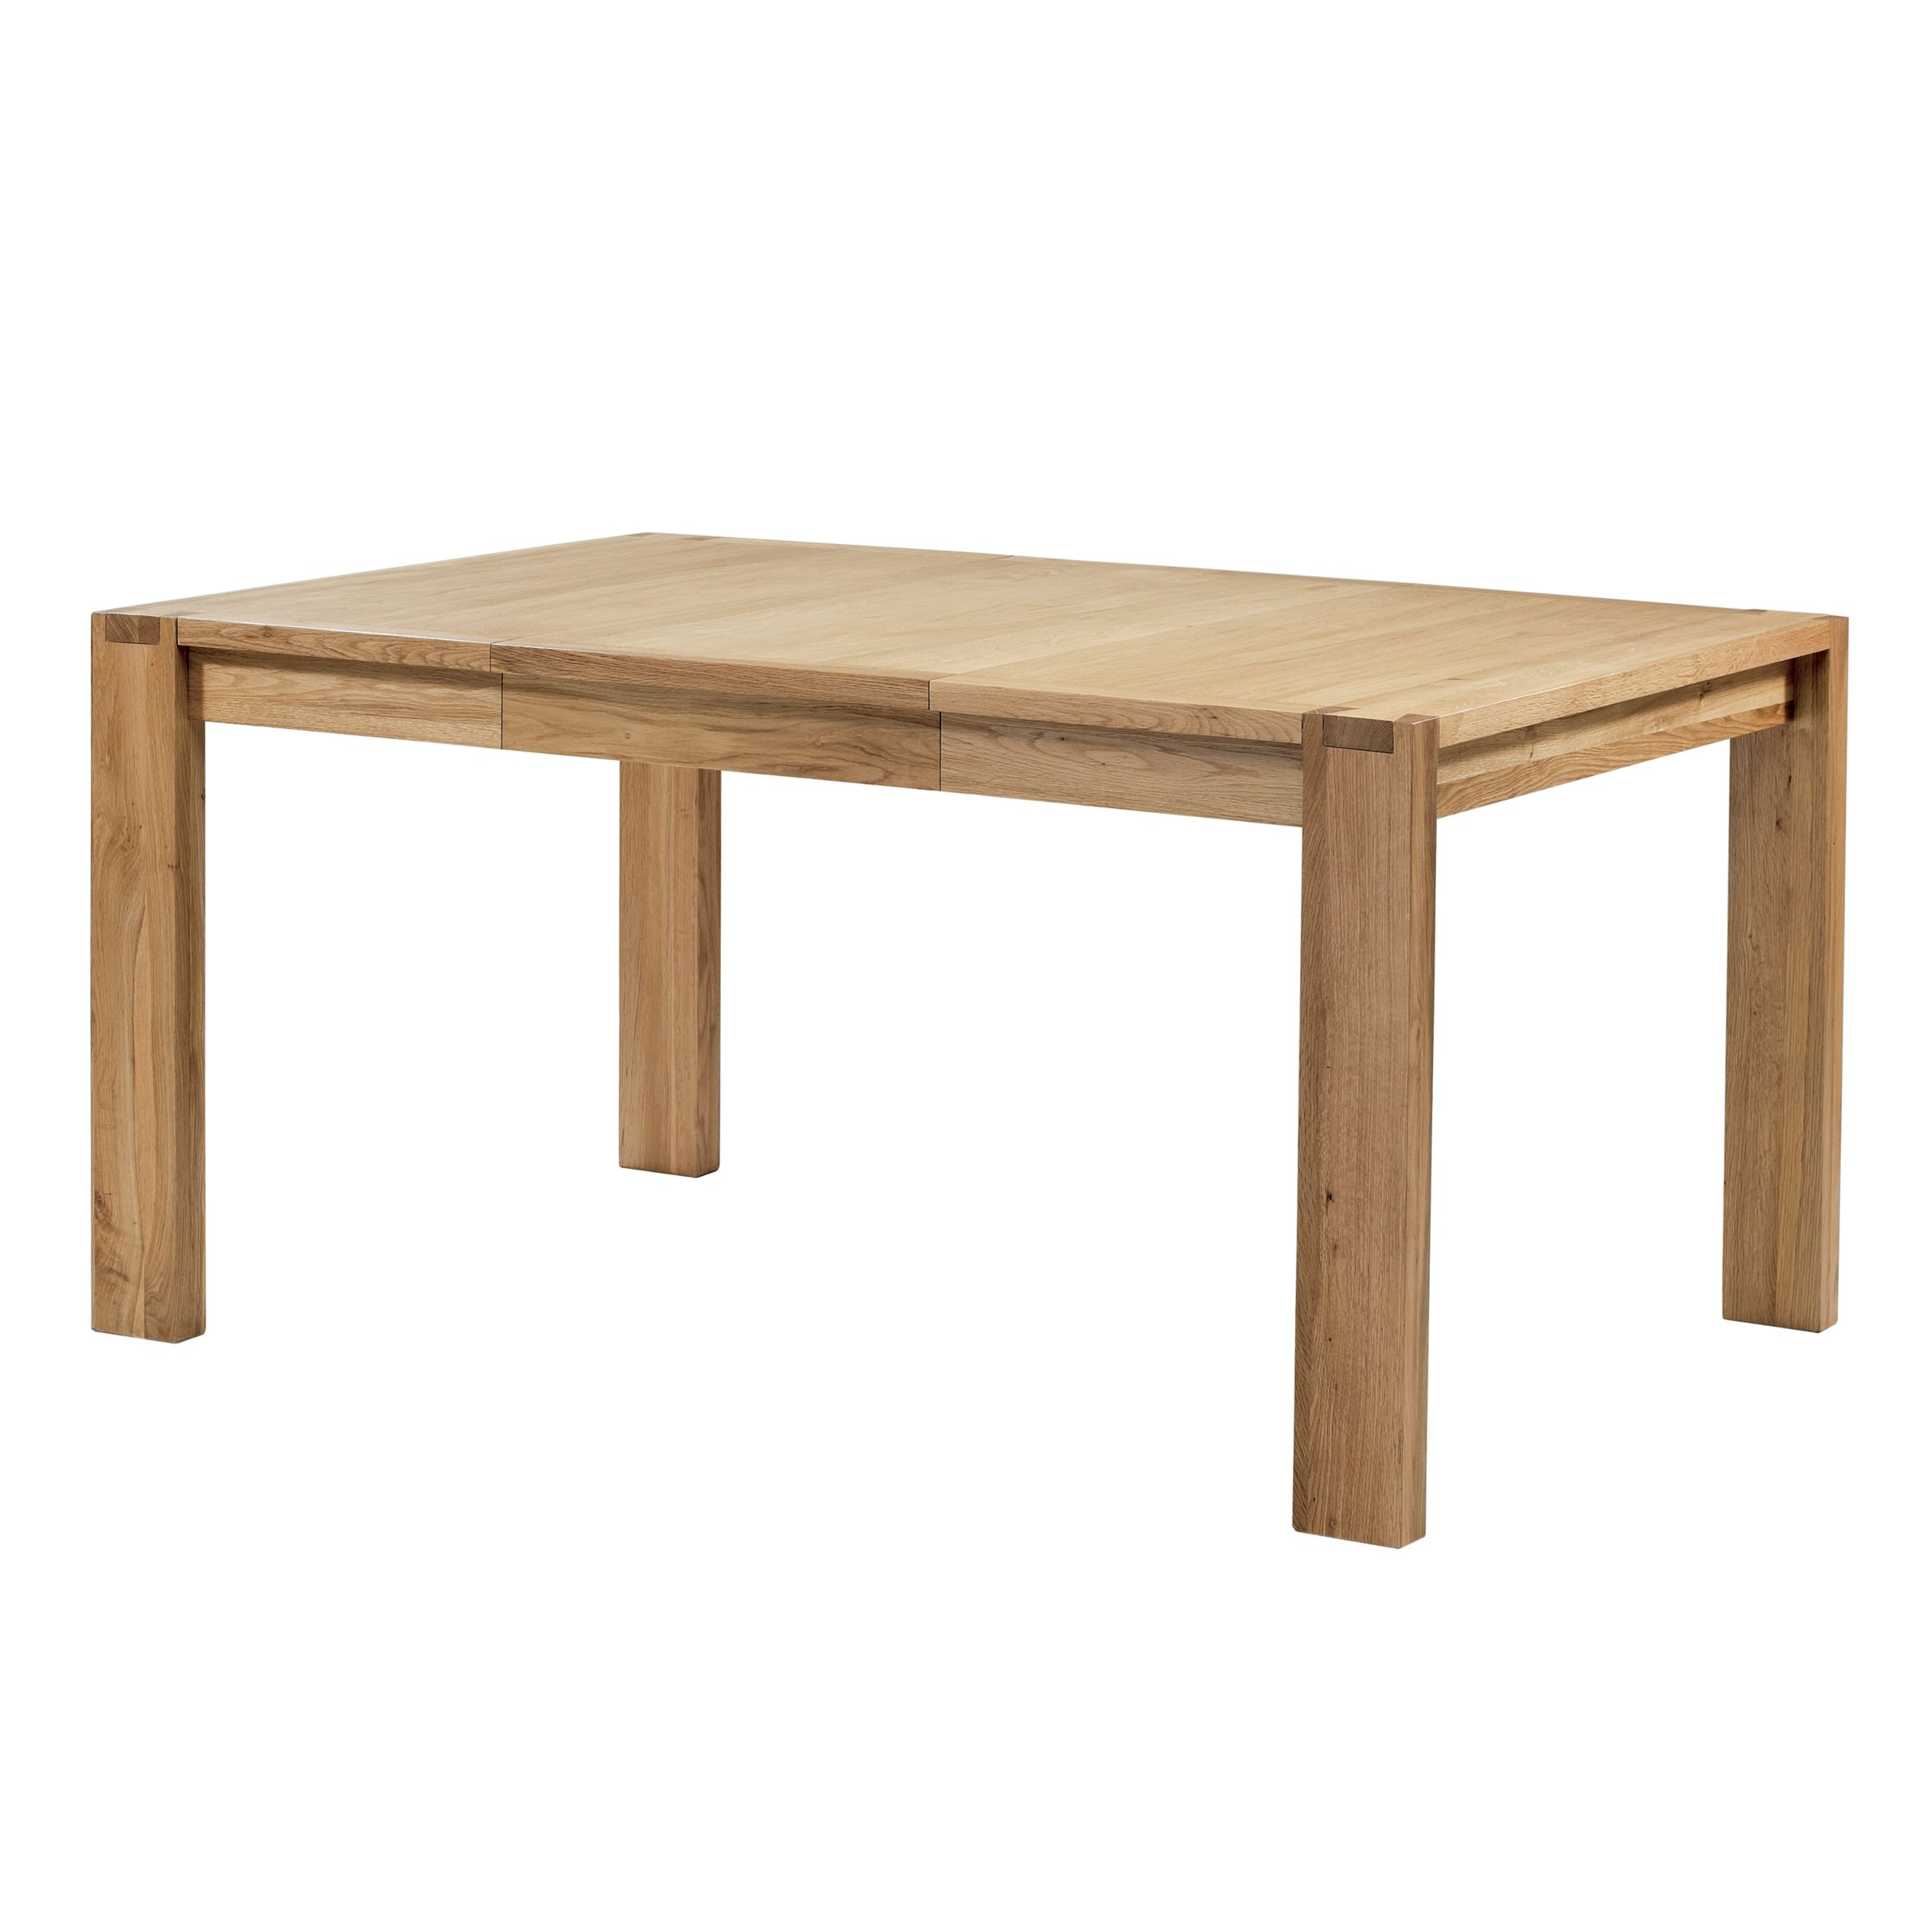 John Lewis Monterey Extending Dining Table Small review  : 230456301 from www.comparestoreprices.co.uk size 2400 x 2400 jpeg 189kB